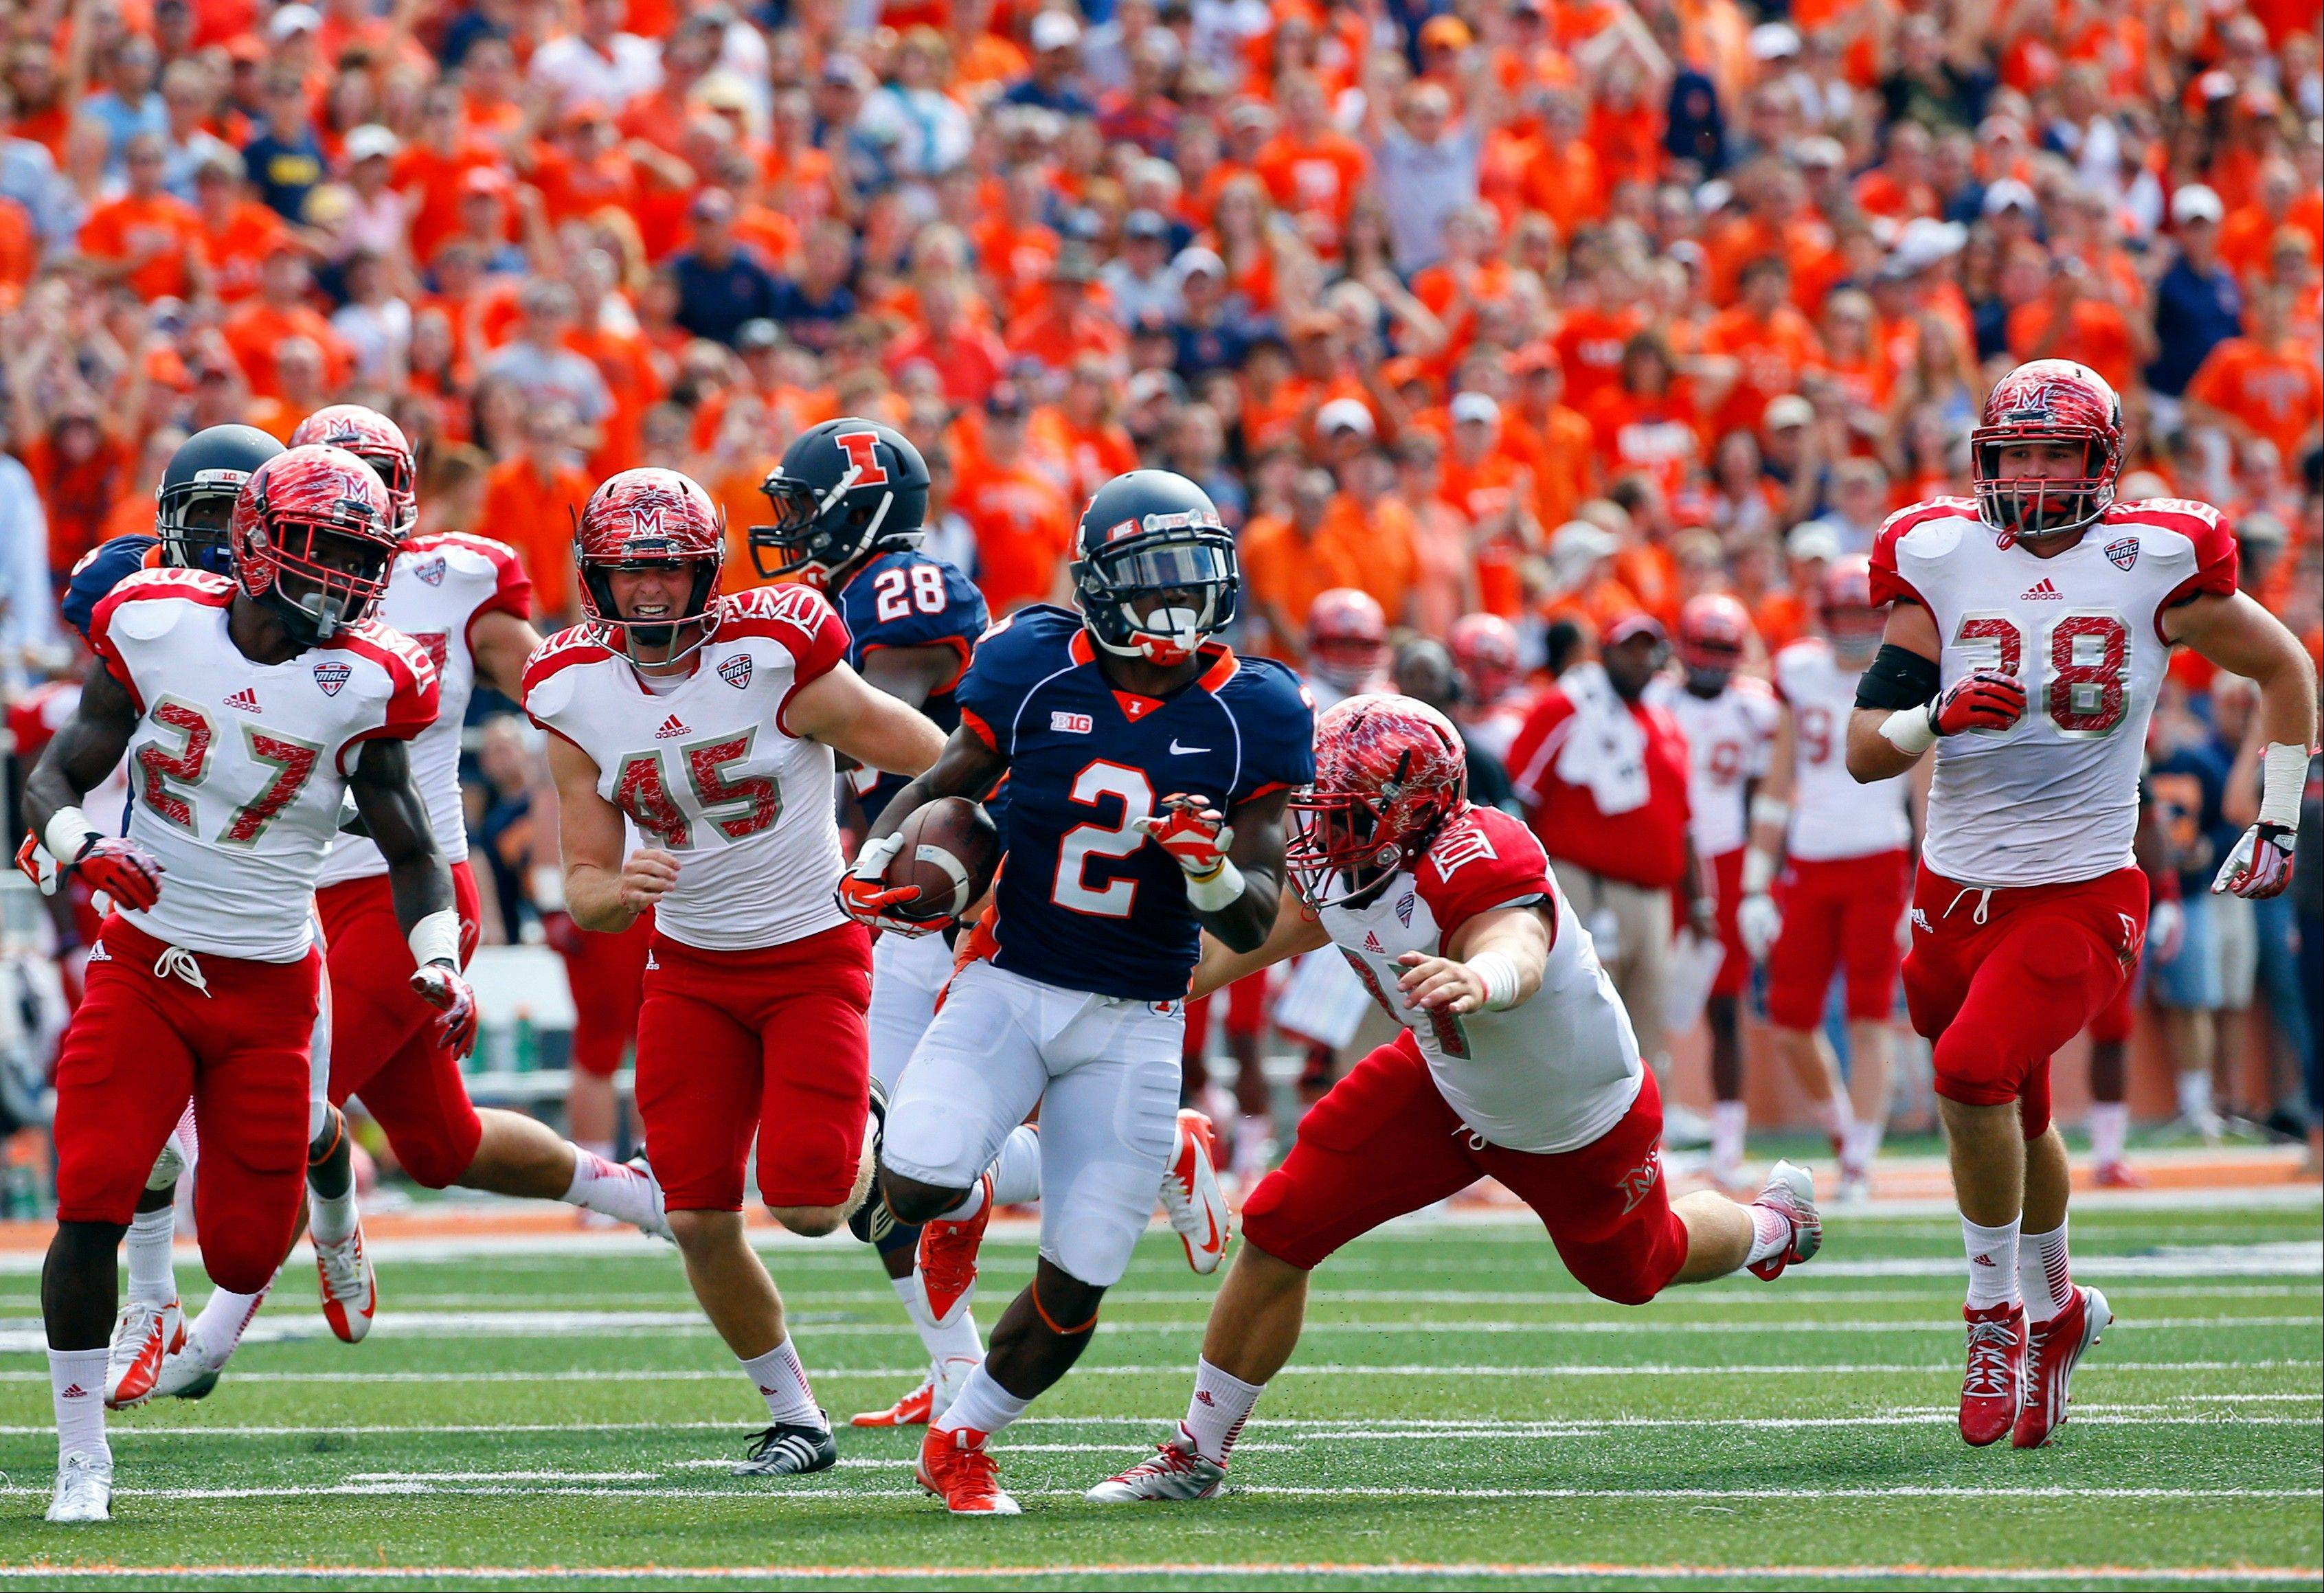 Illinois punt returner V'Angelo Bentley (2) is chased down by Miami (Ohio) defensive back Jarrell Jones (27) kicker Zac Murphy (45), running back Grant Niemiec (37) and linebacker Tyler Tucker (38) during the first half of an NCAA college football game on Saturday, Sept. 28, 2013, at Memorial Stadium in Champaign, Ill.